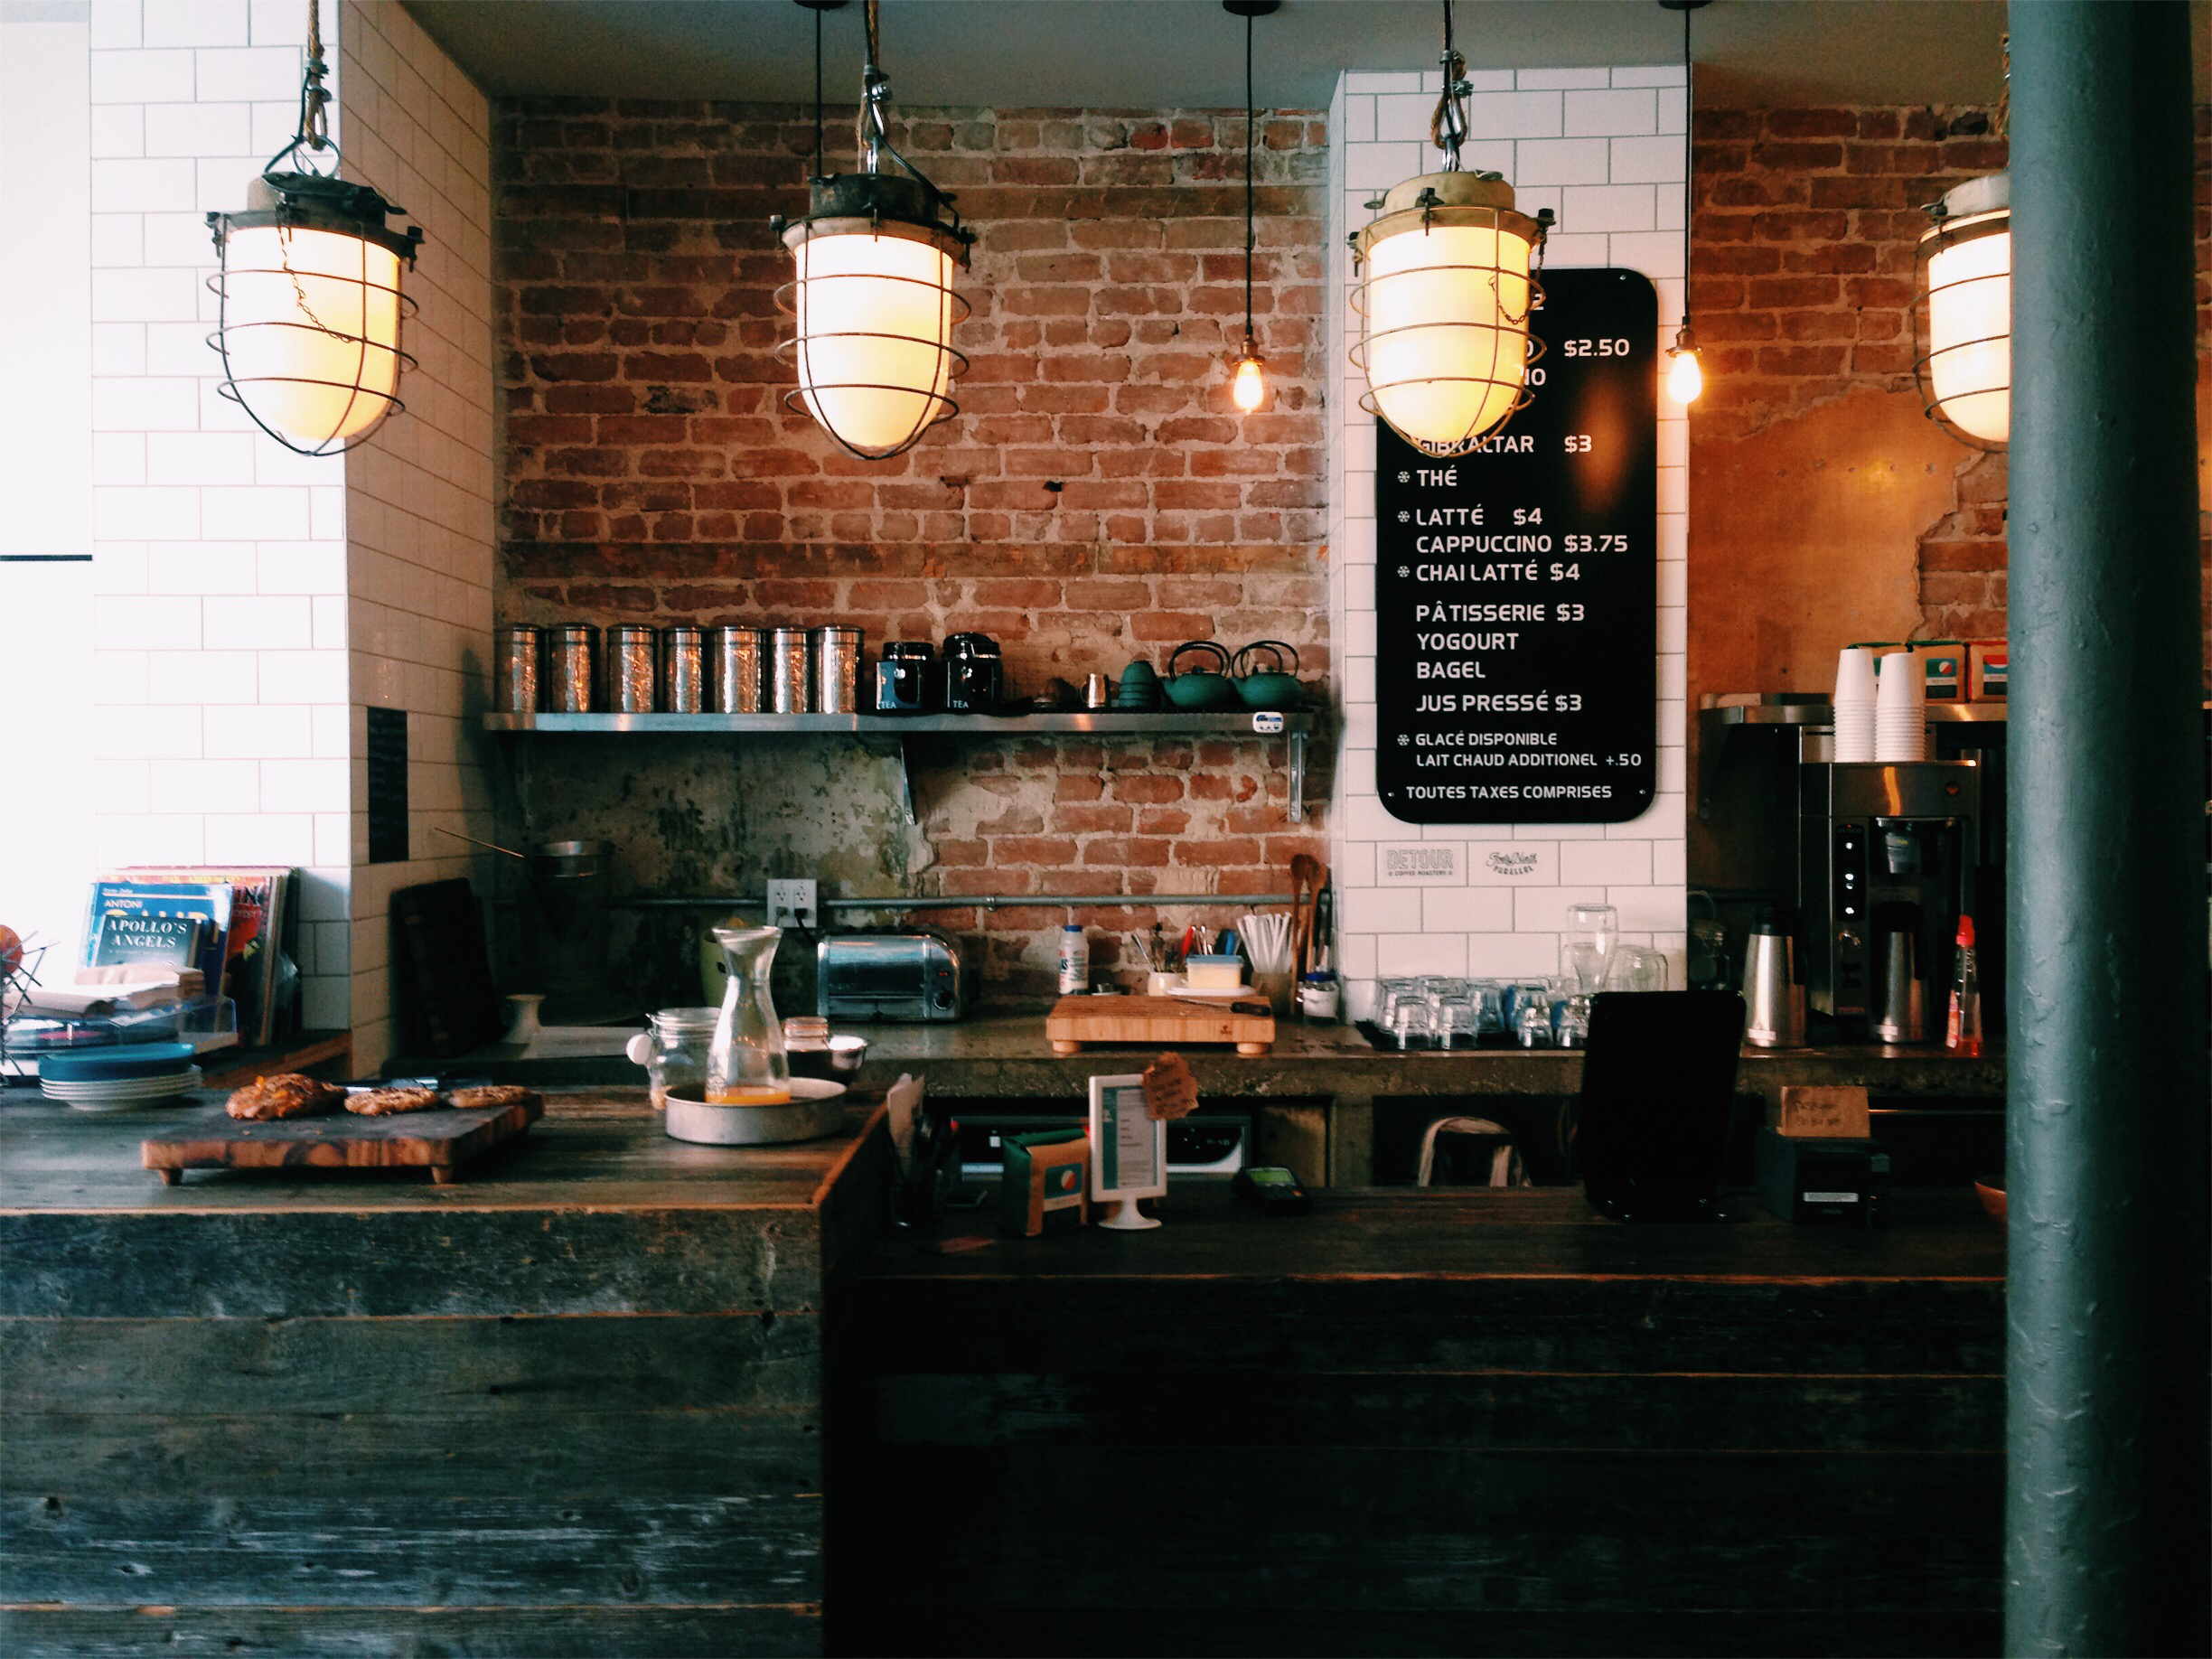 Cafe Kitsune/Nocturne in the Plateau, Montreal via Lora Weaver Mysteries by Katy Leen